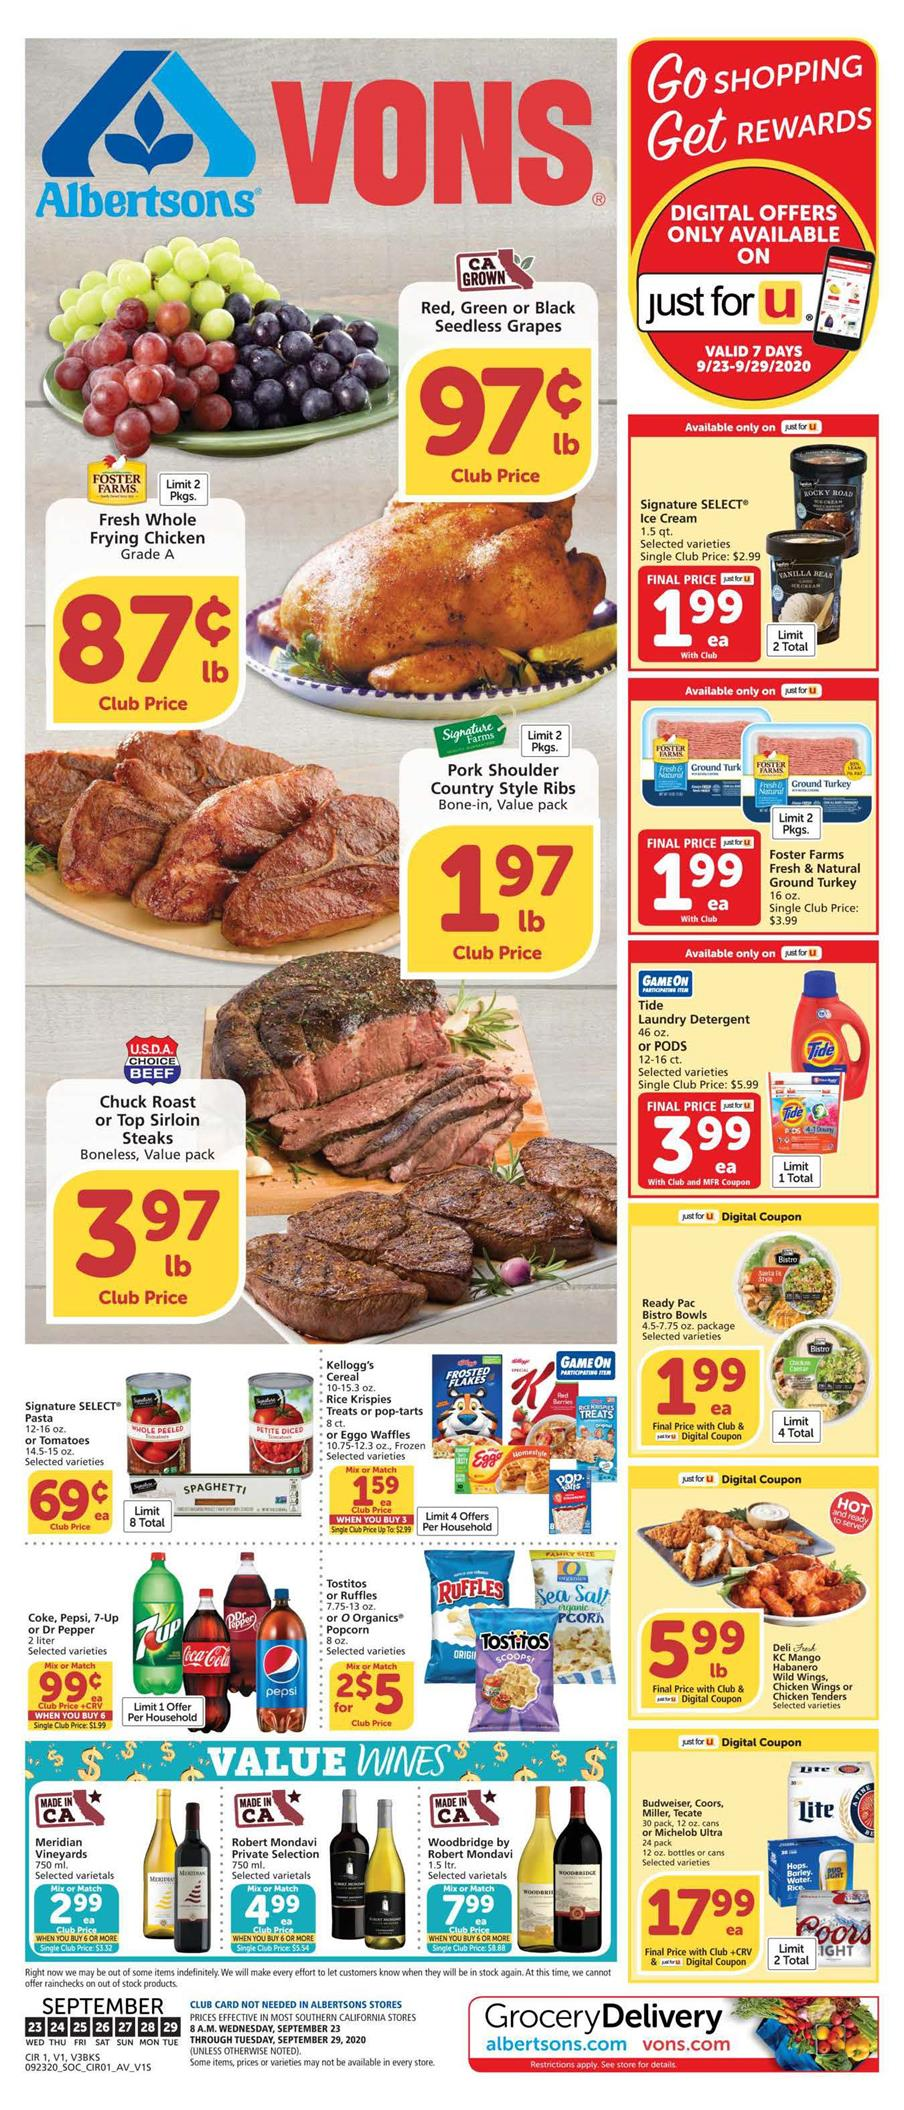 Vons Final September Ad valid from Sep 23 – 29, 2020